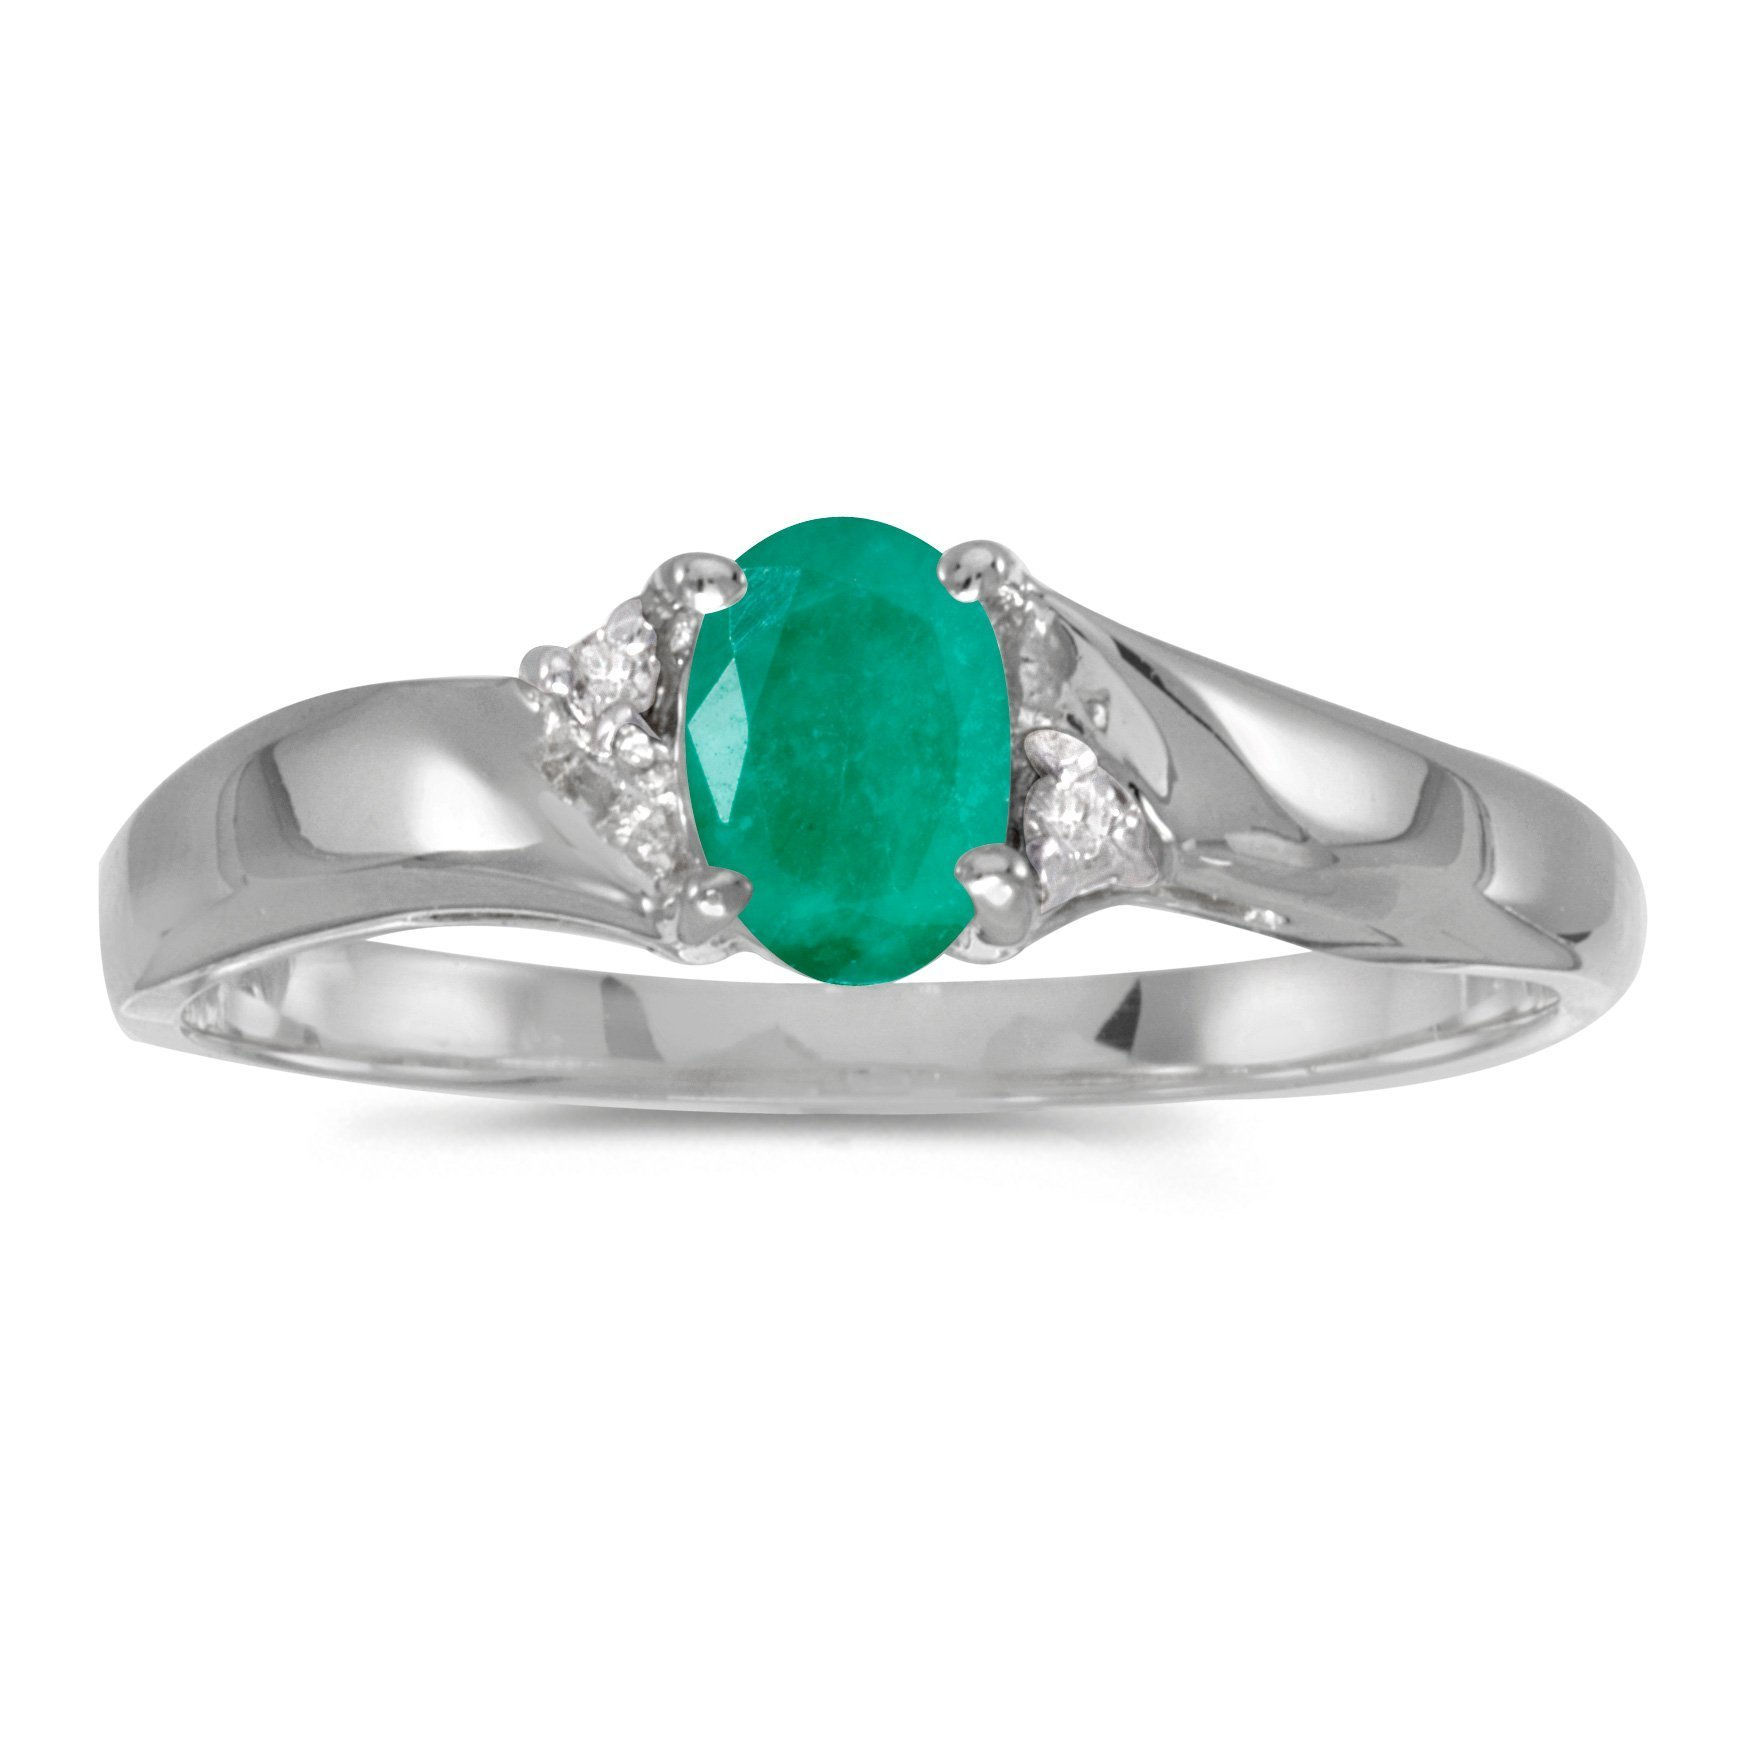 FB Jewels 925 Sterling Silver Oval Emerald And Diamond Wedding Engagement Statement Ring - Size 10.5 (0.31 Cttw.)